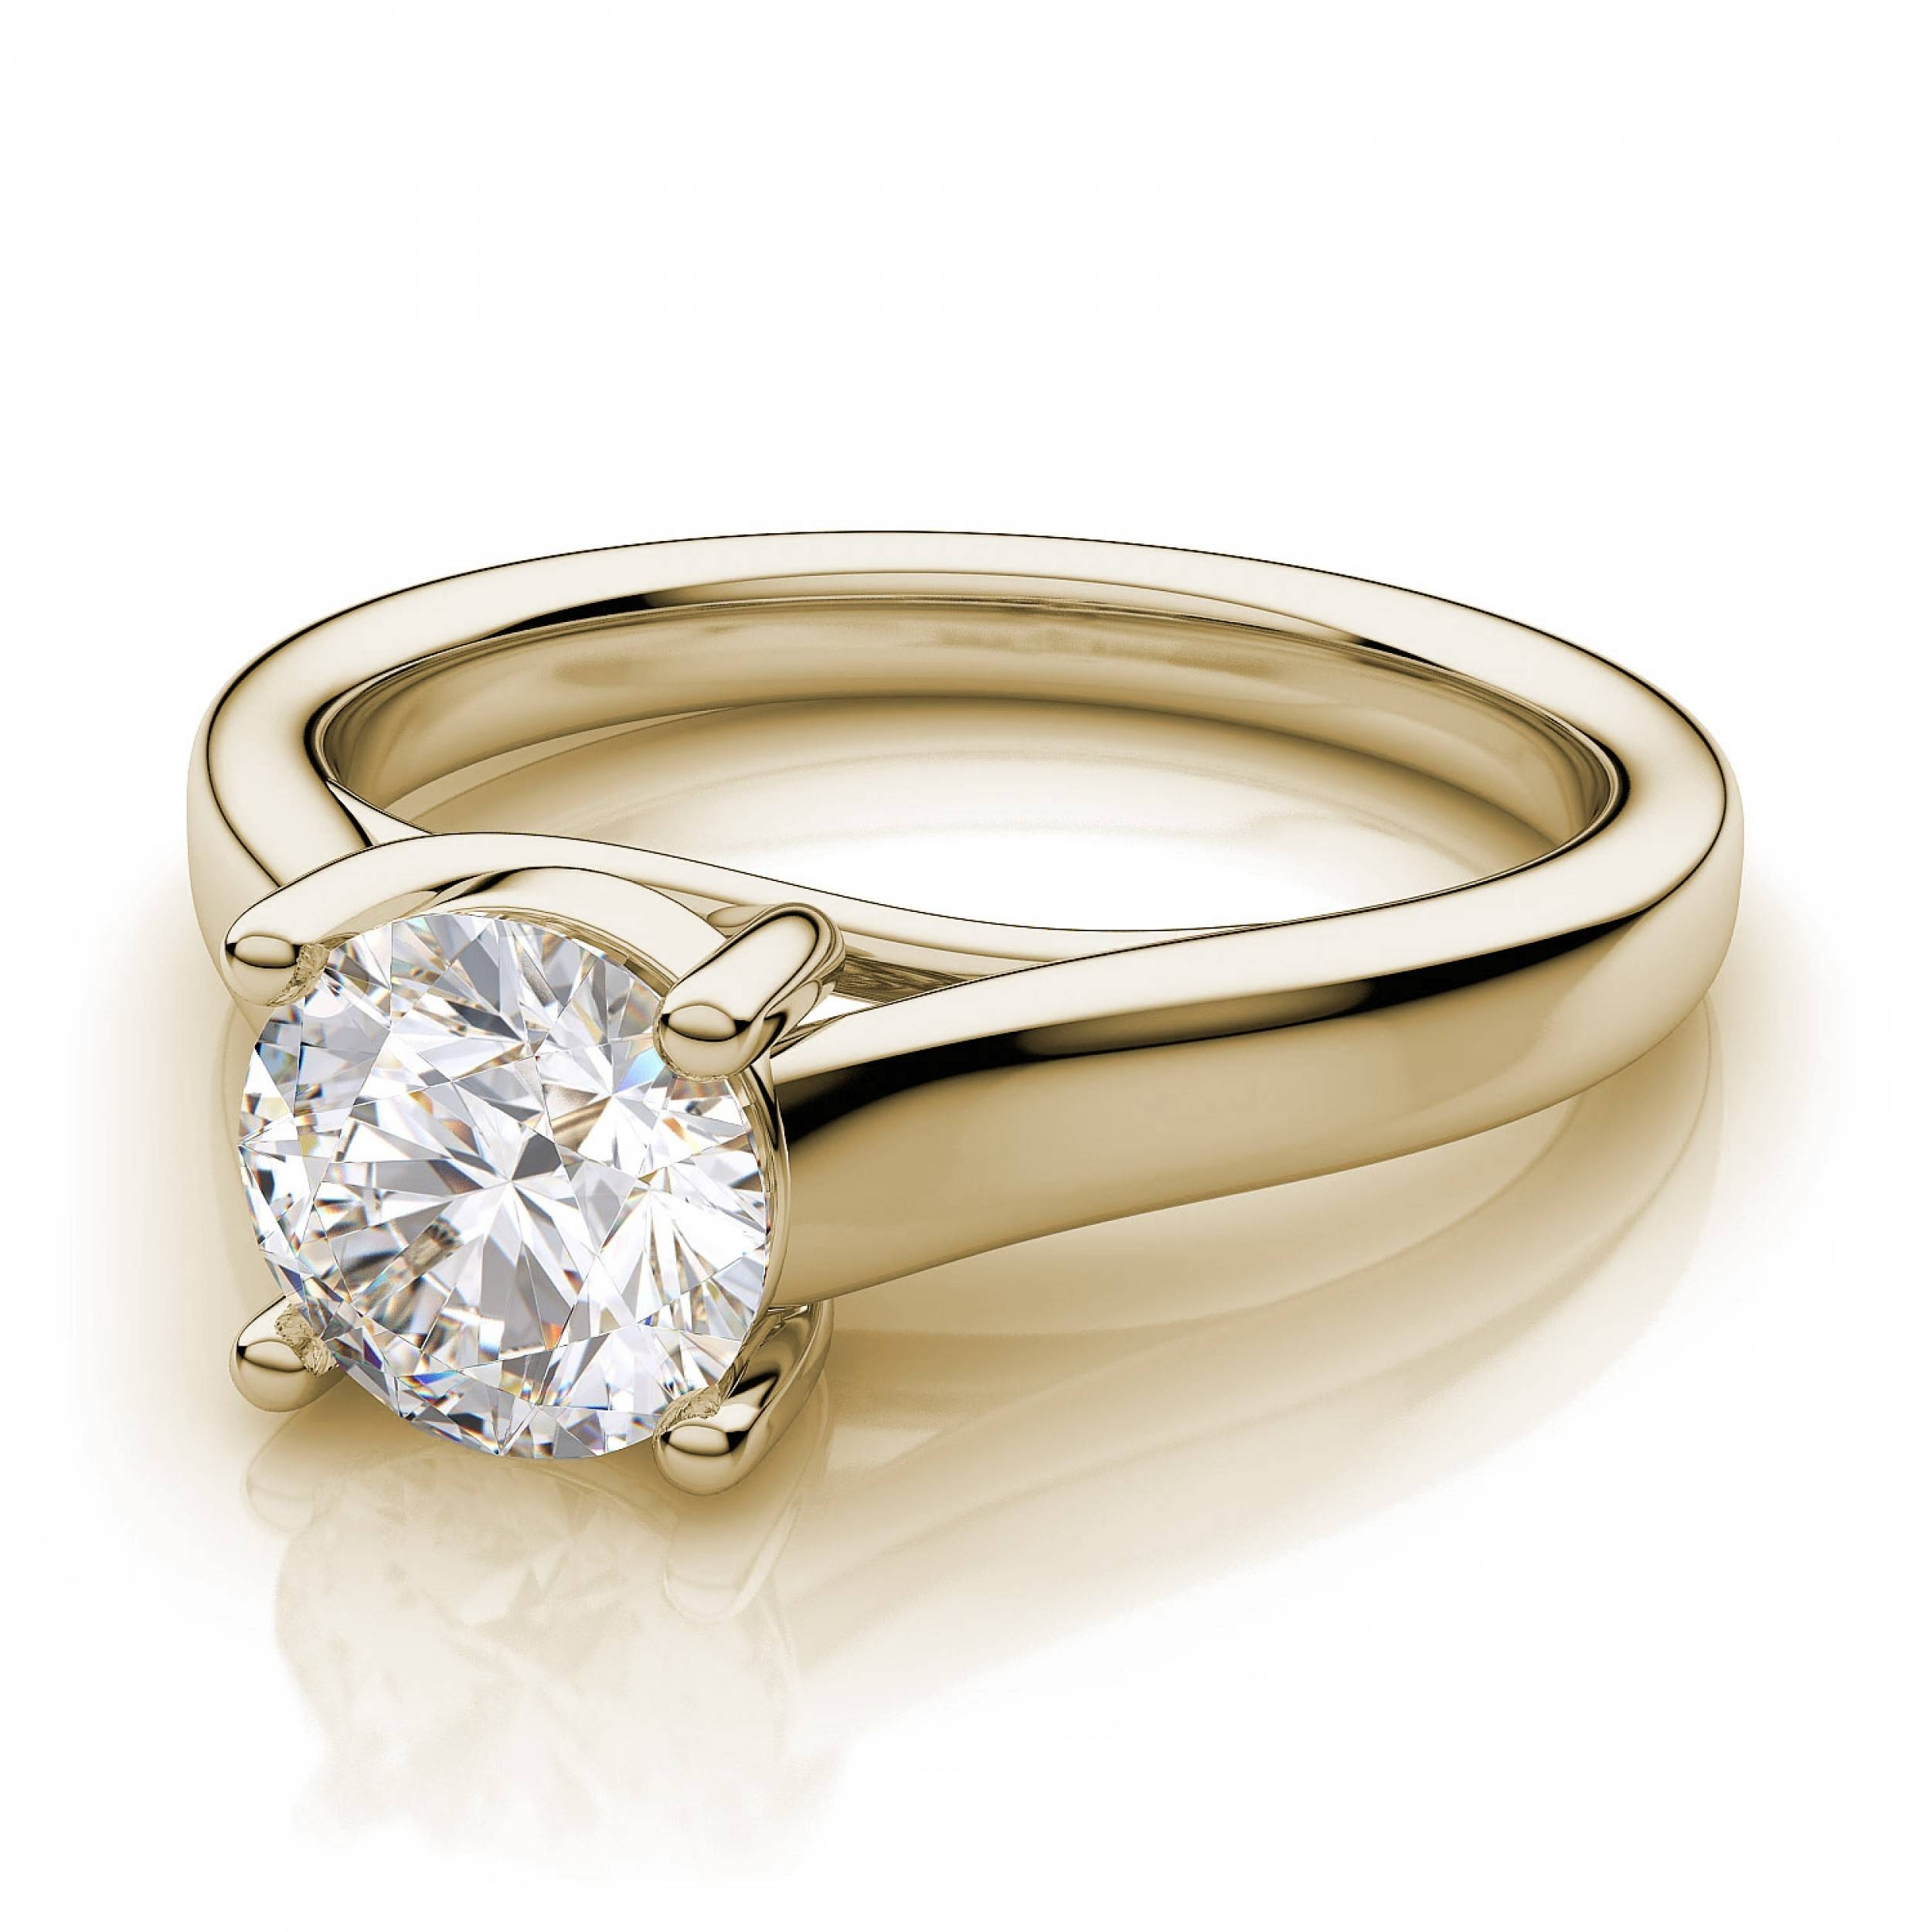 Solitaire Engagement Ring – 18K Yellow Gold Regarding Platinum Wedding Rings Settings (View 13 of 15)